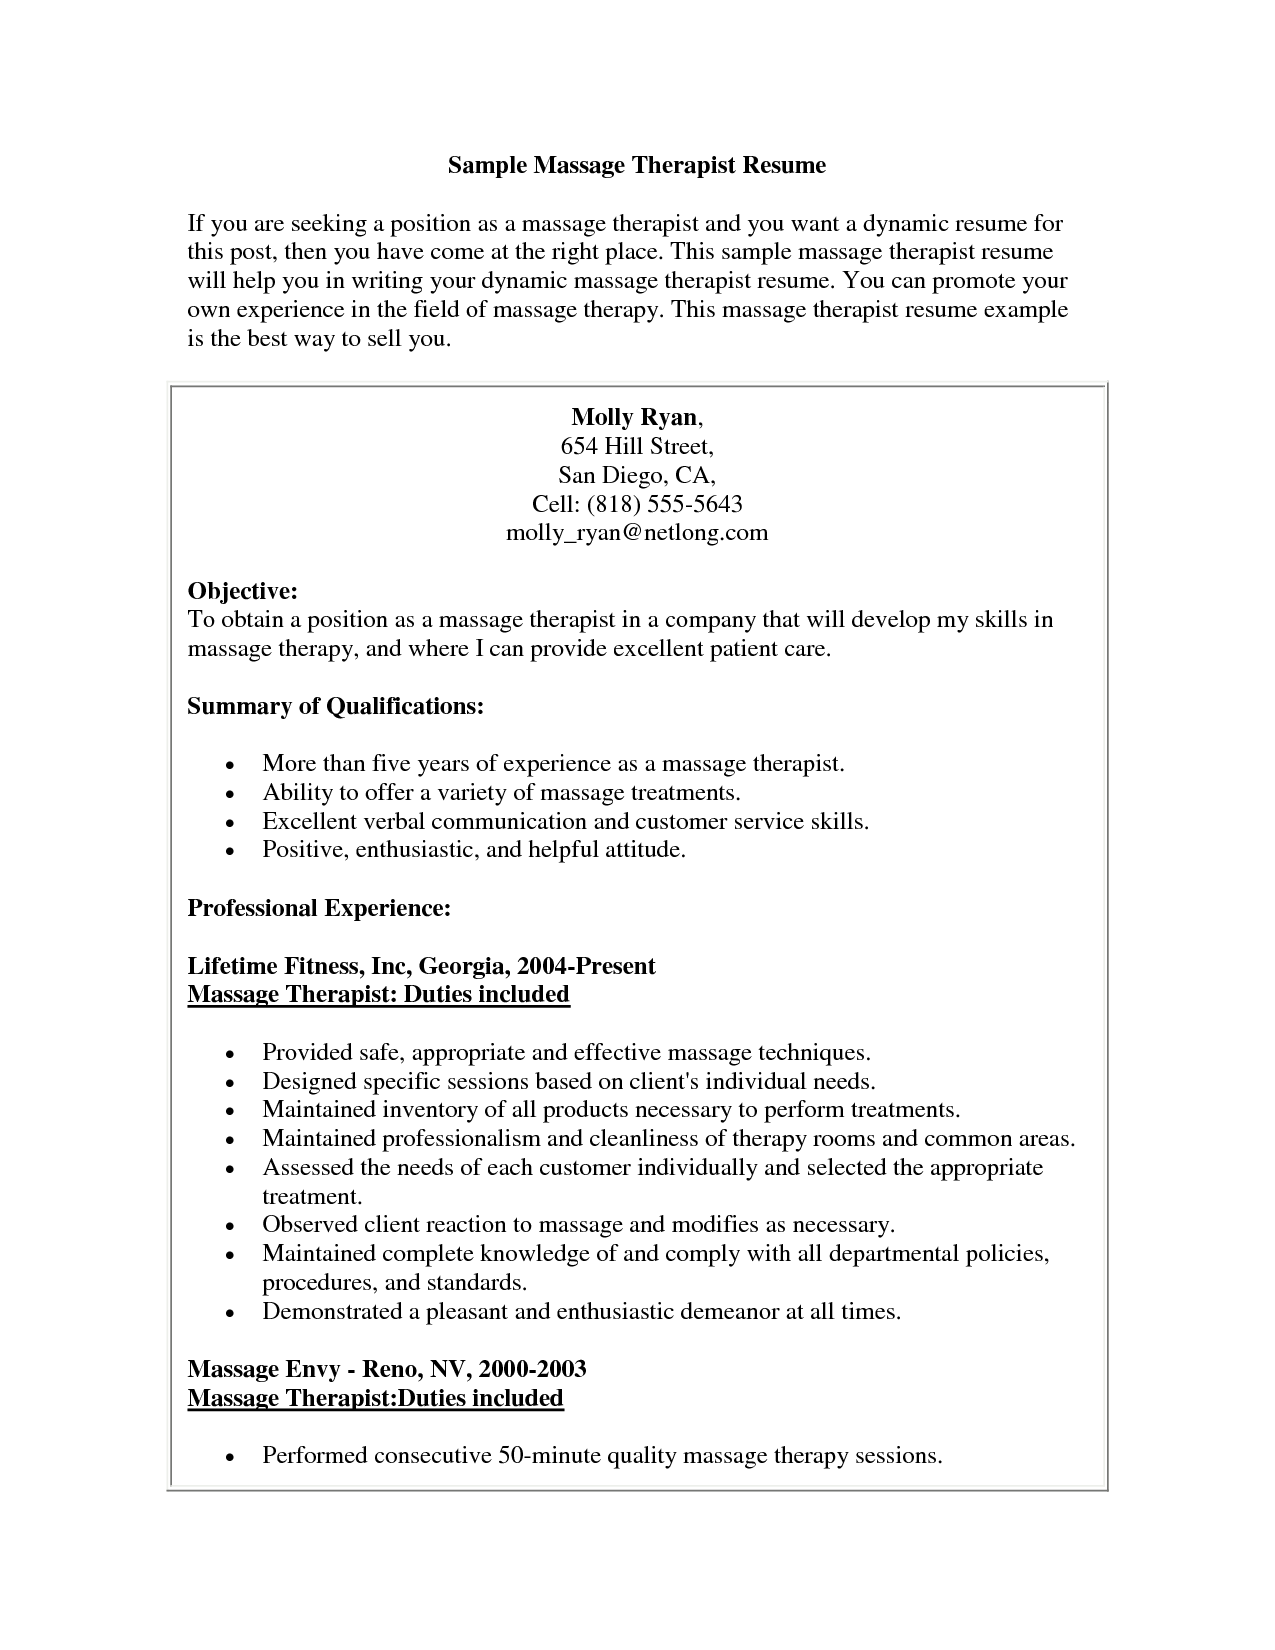 massage therapist resume sample massage therapist resume sample massage therapist resume objective massage therapist. Resume Example. Resume CV Cover Letter